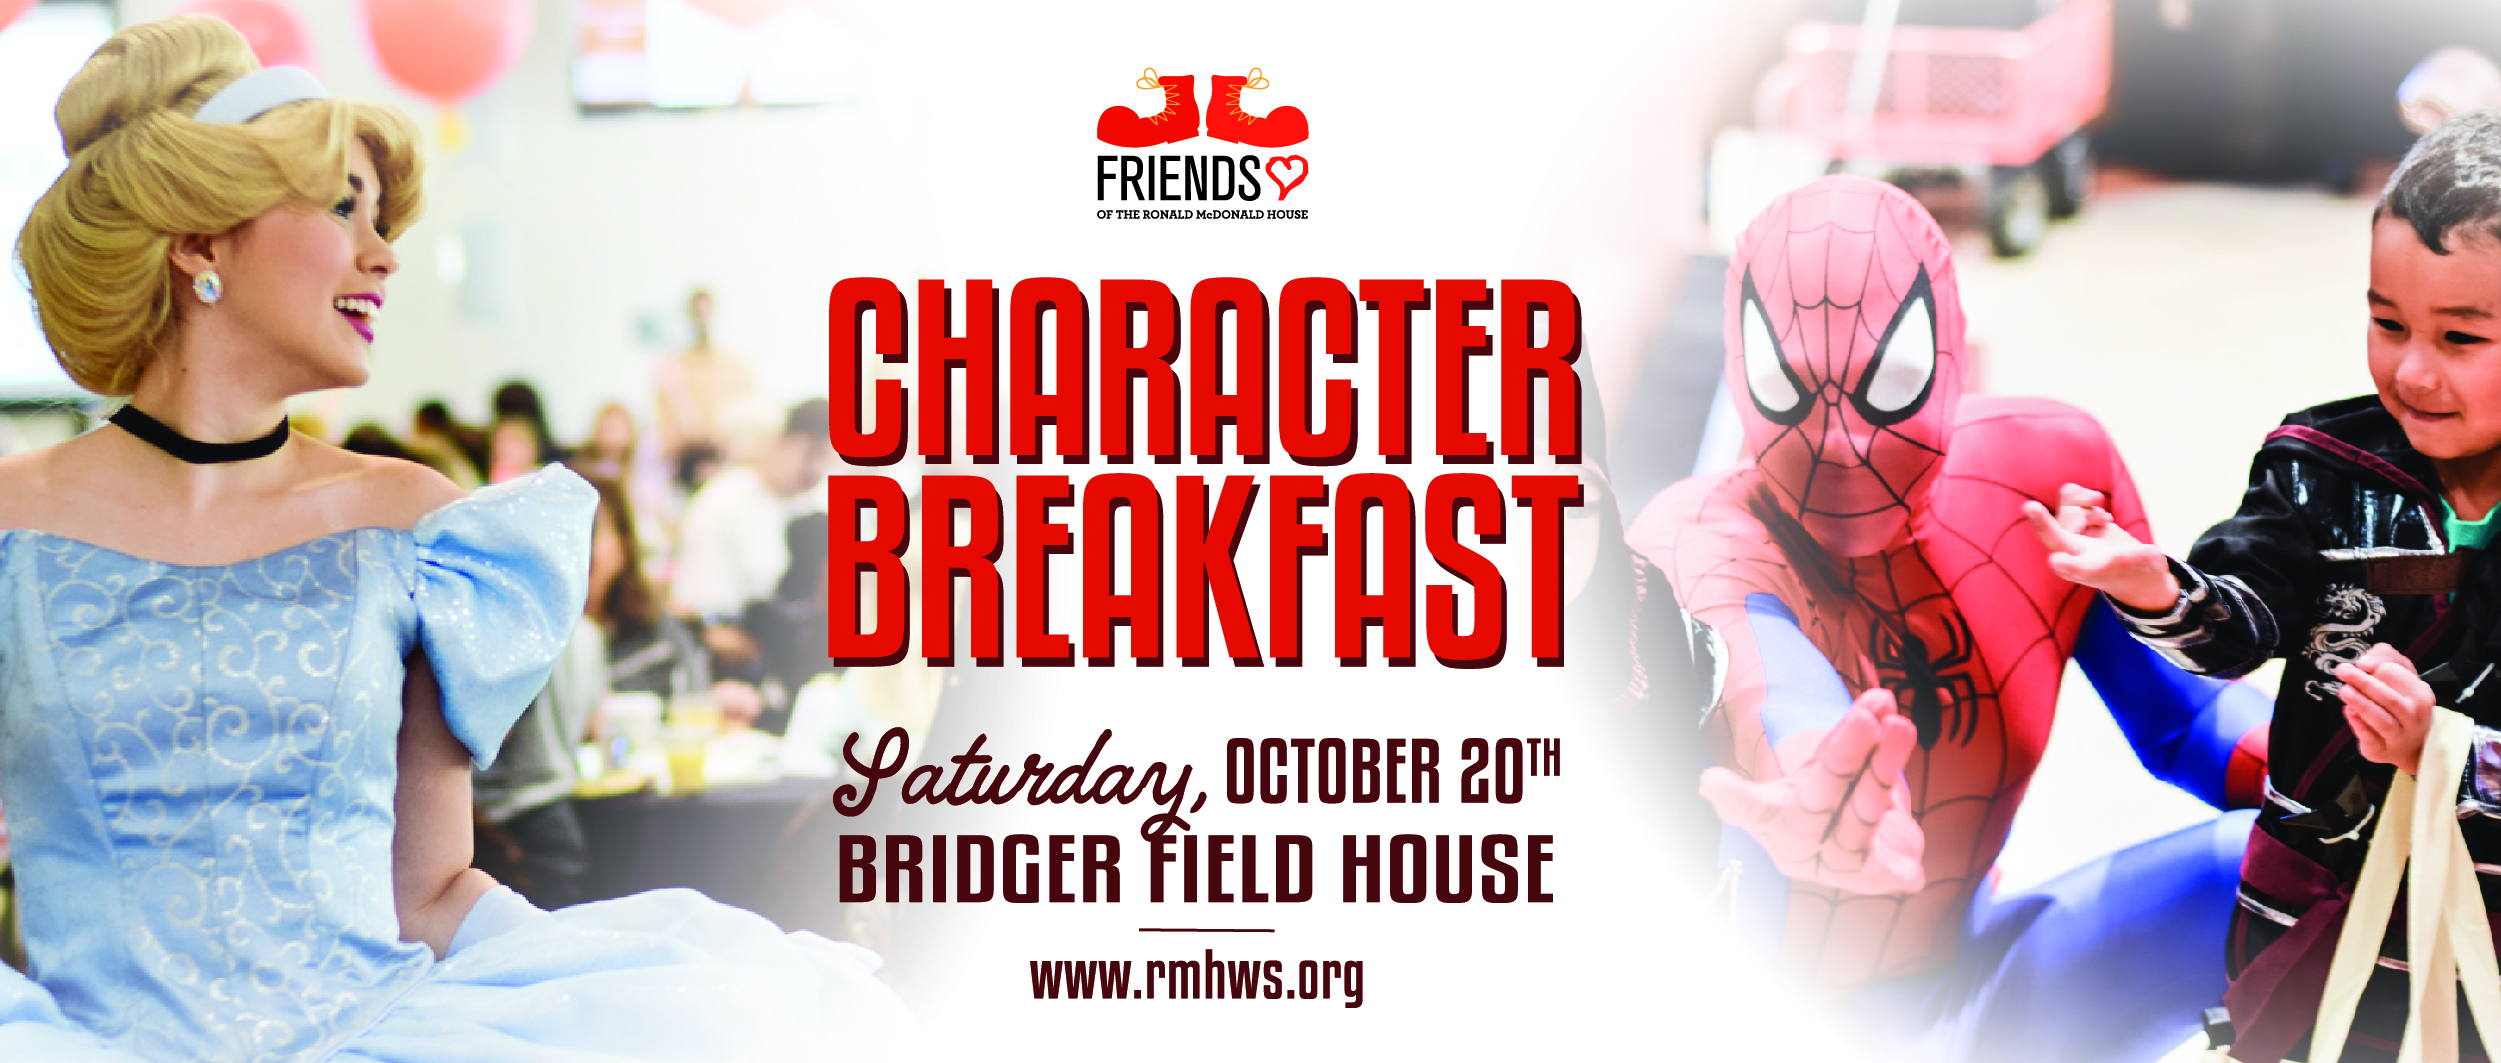 9th Annual Character Breakfast